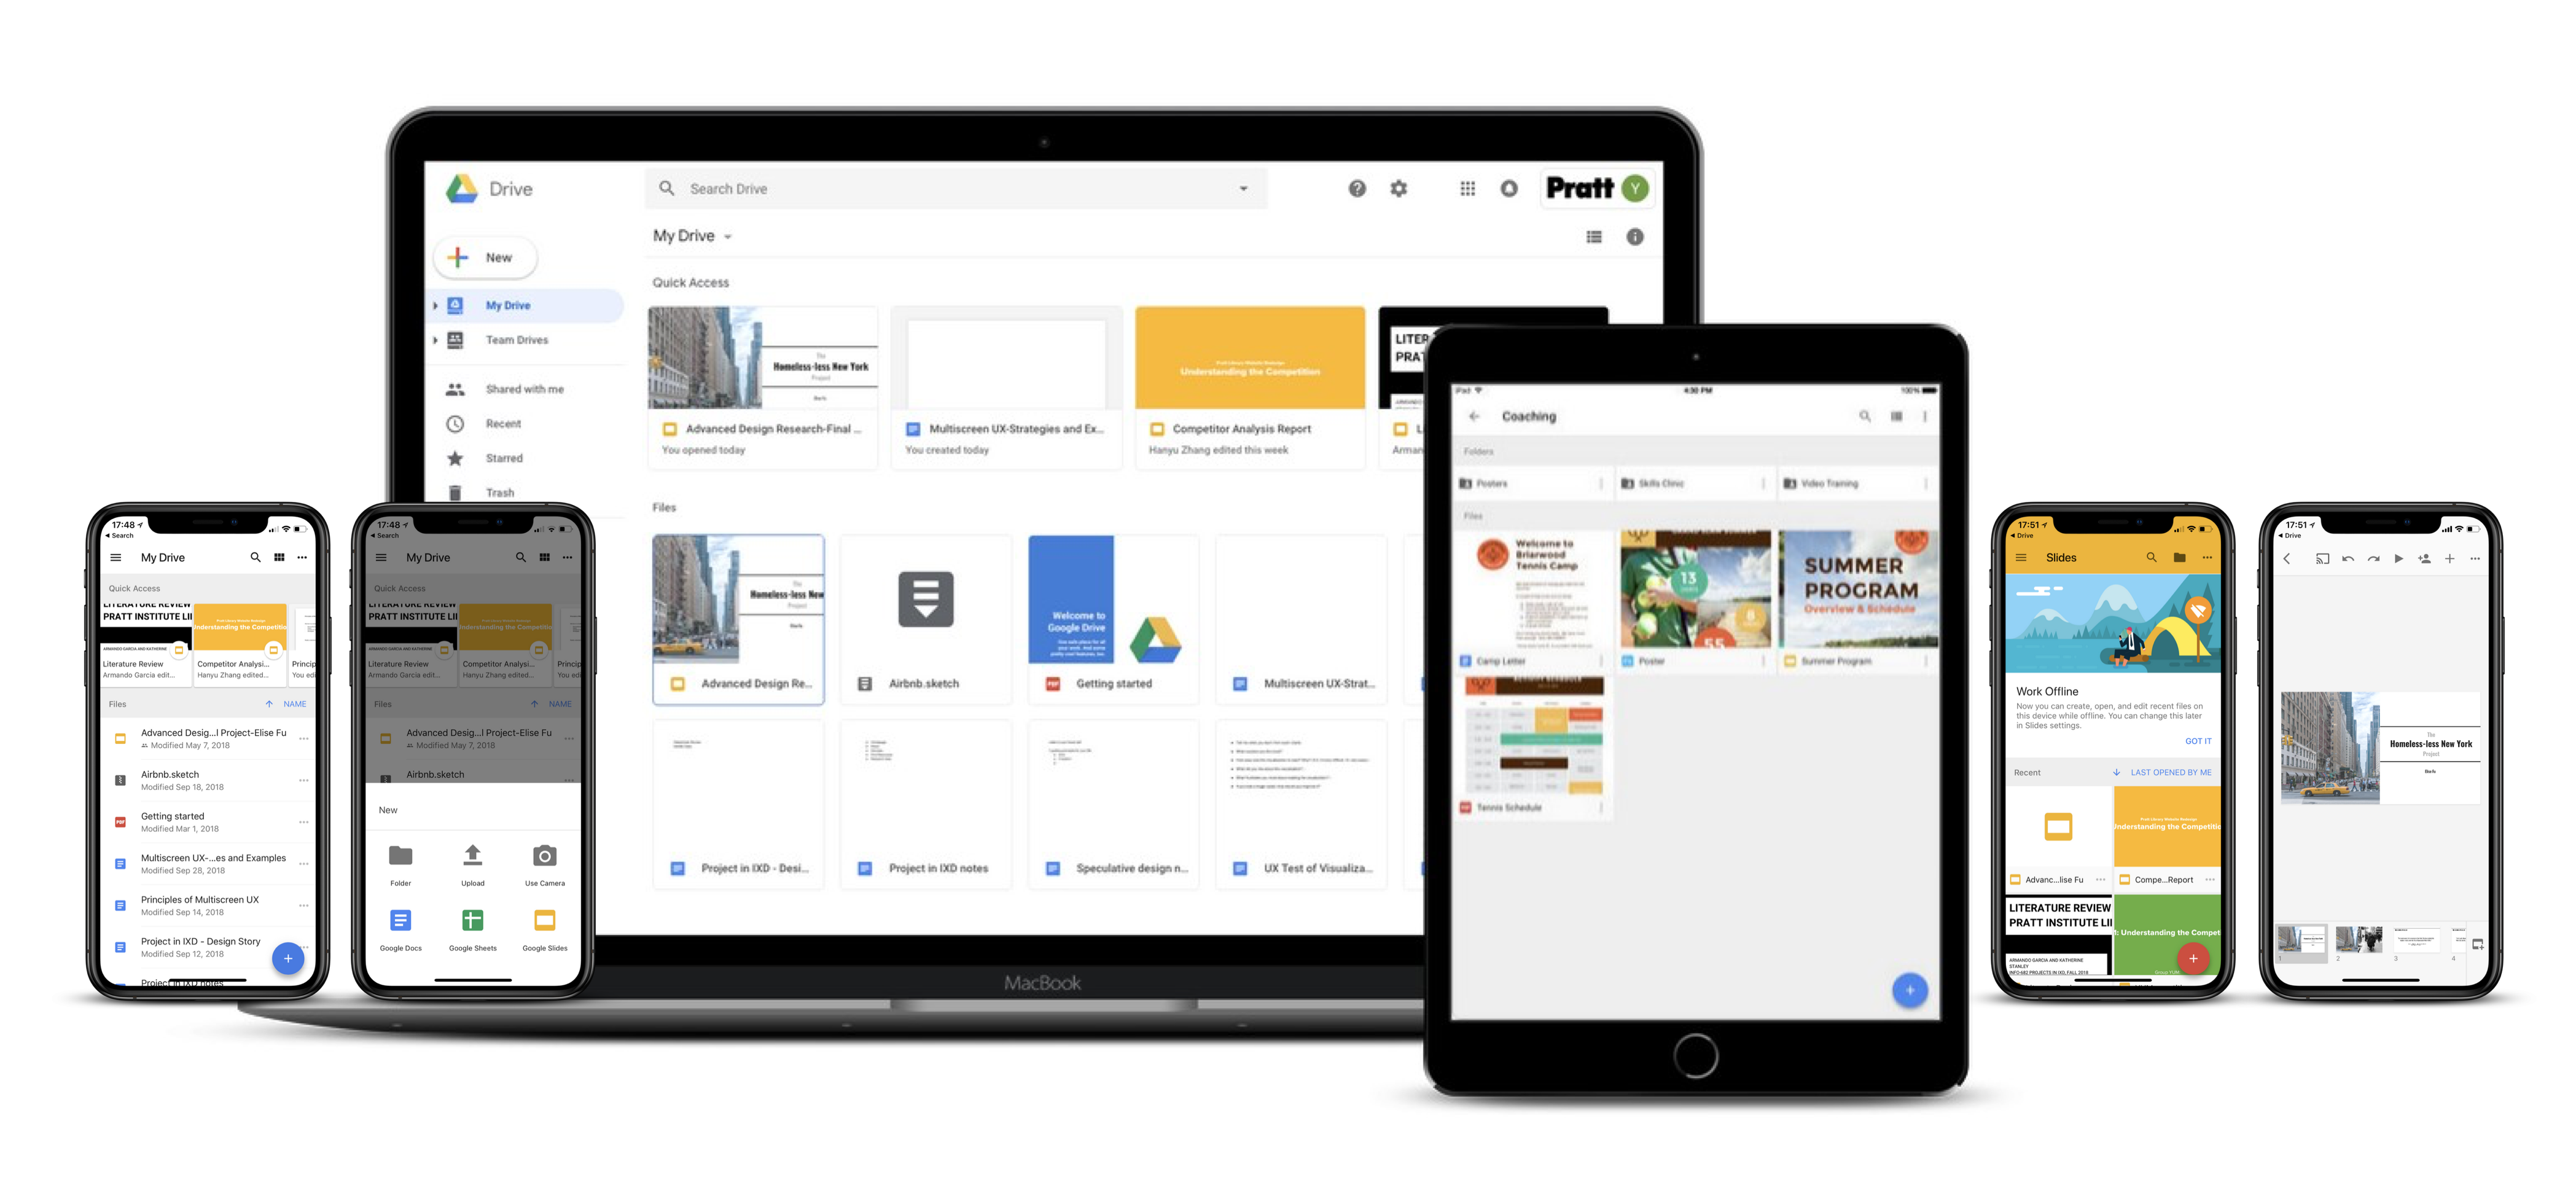 Google Drive and Slides-Multiscreen UX